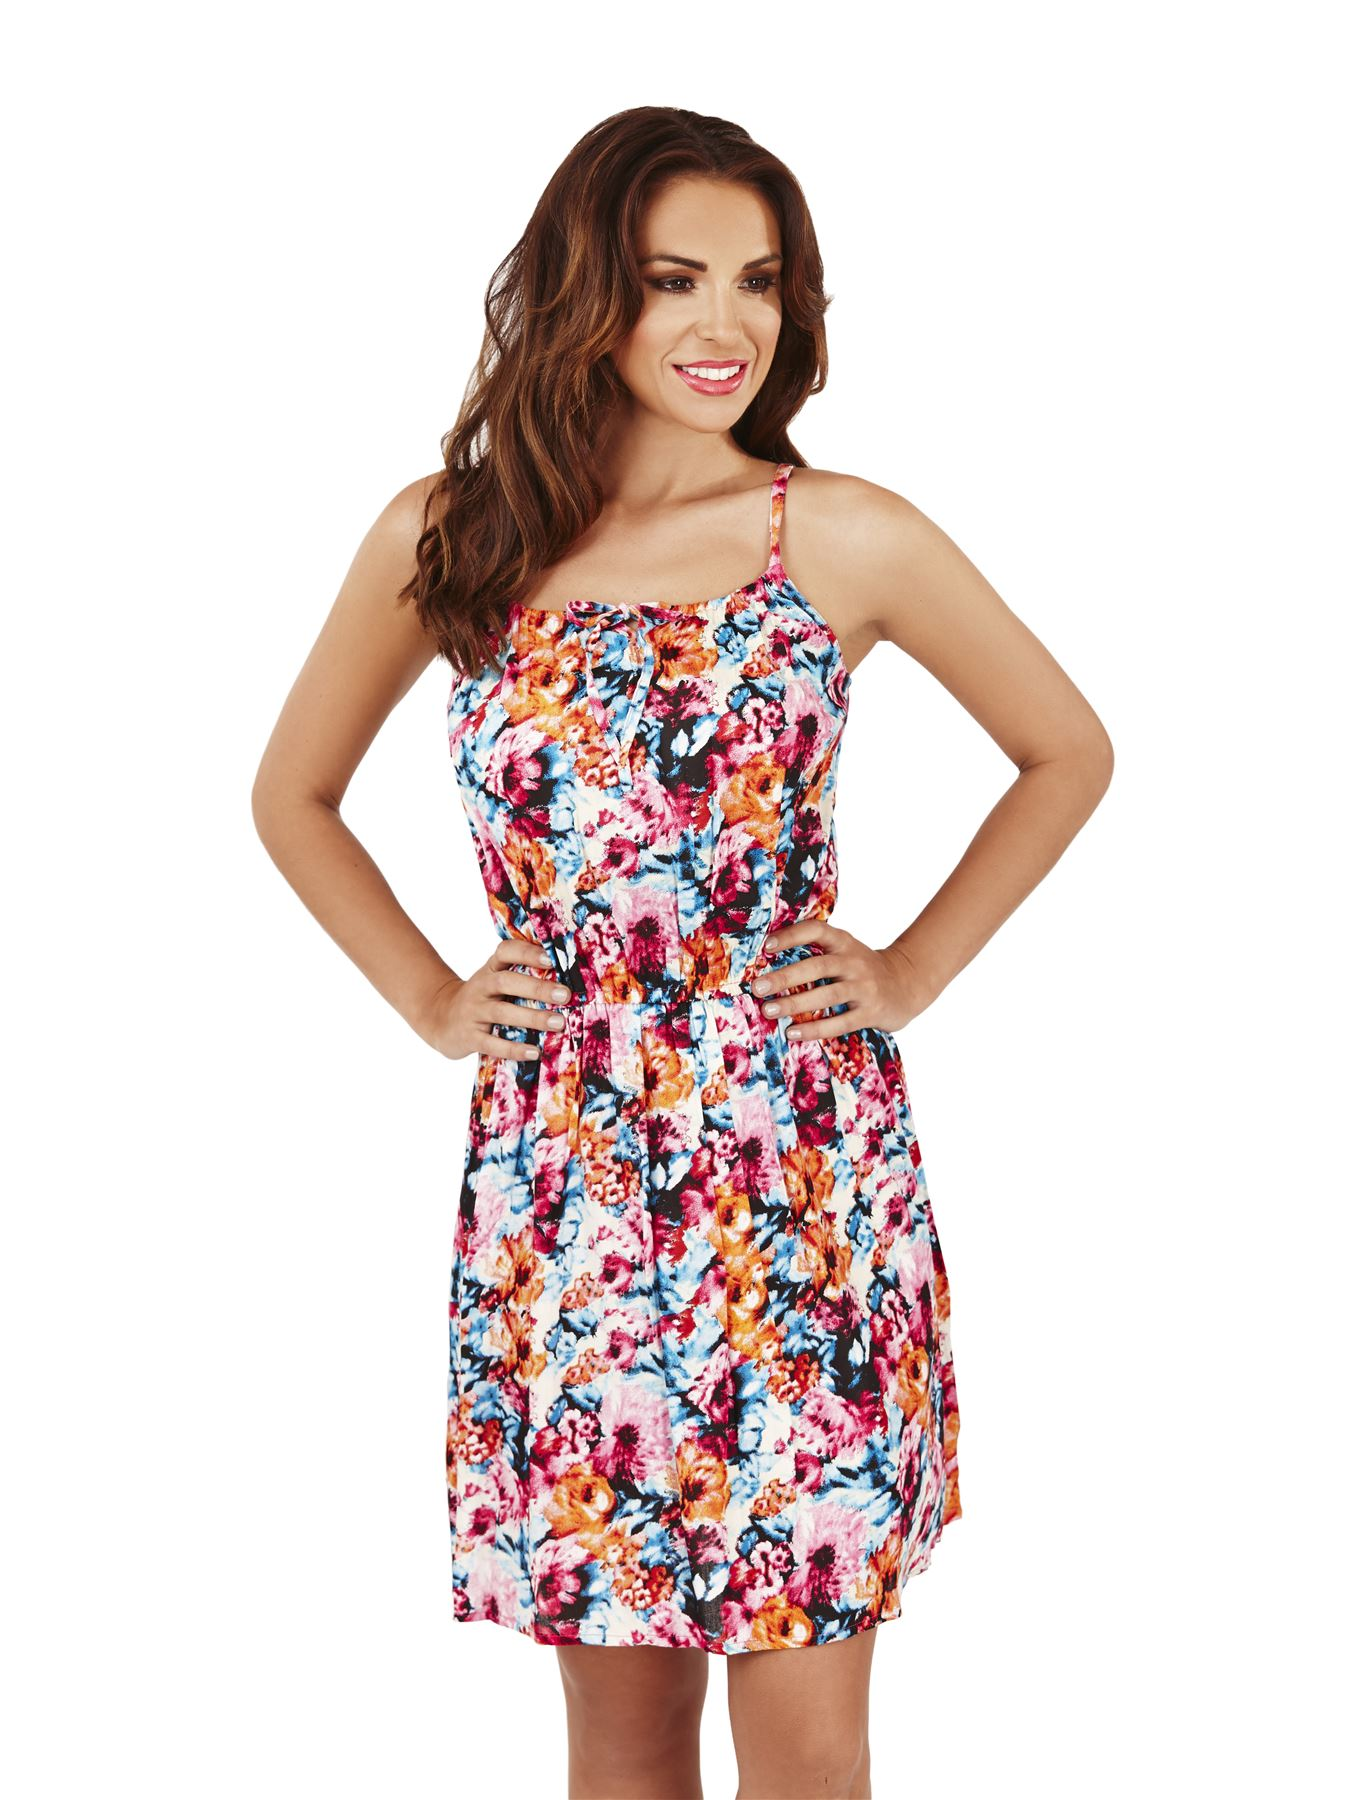 Dresses don't just have to be for special occasions. Casual dresses are a very comfortable and stylish alternative to wearing jeans every day. With many elegant plus size dress options, you can slip into a dress and pair it with black tights and knee-high boots for a look that is fun but still practical enough to wear as a day-to-day outfit.